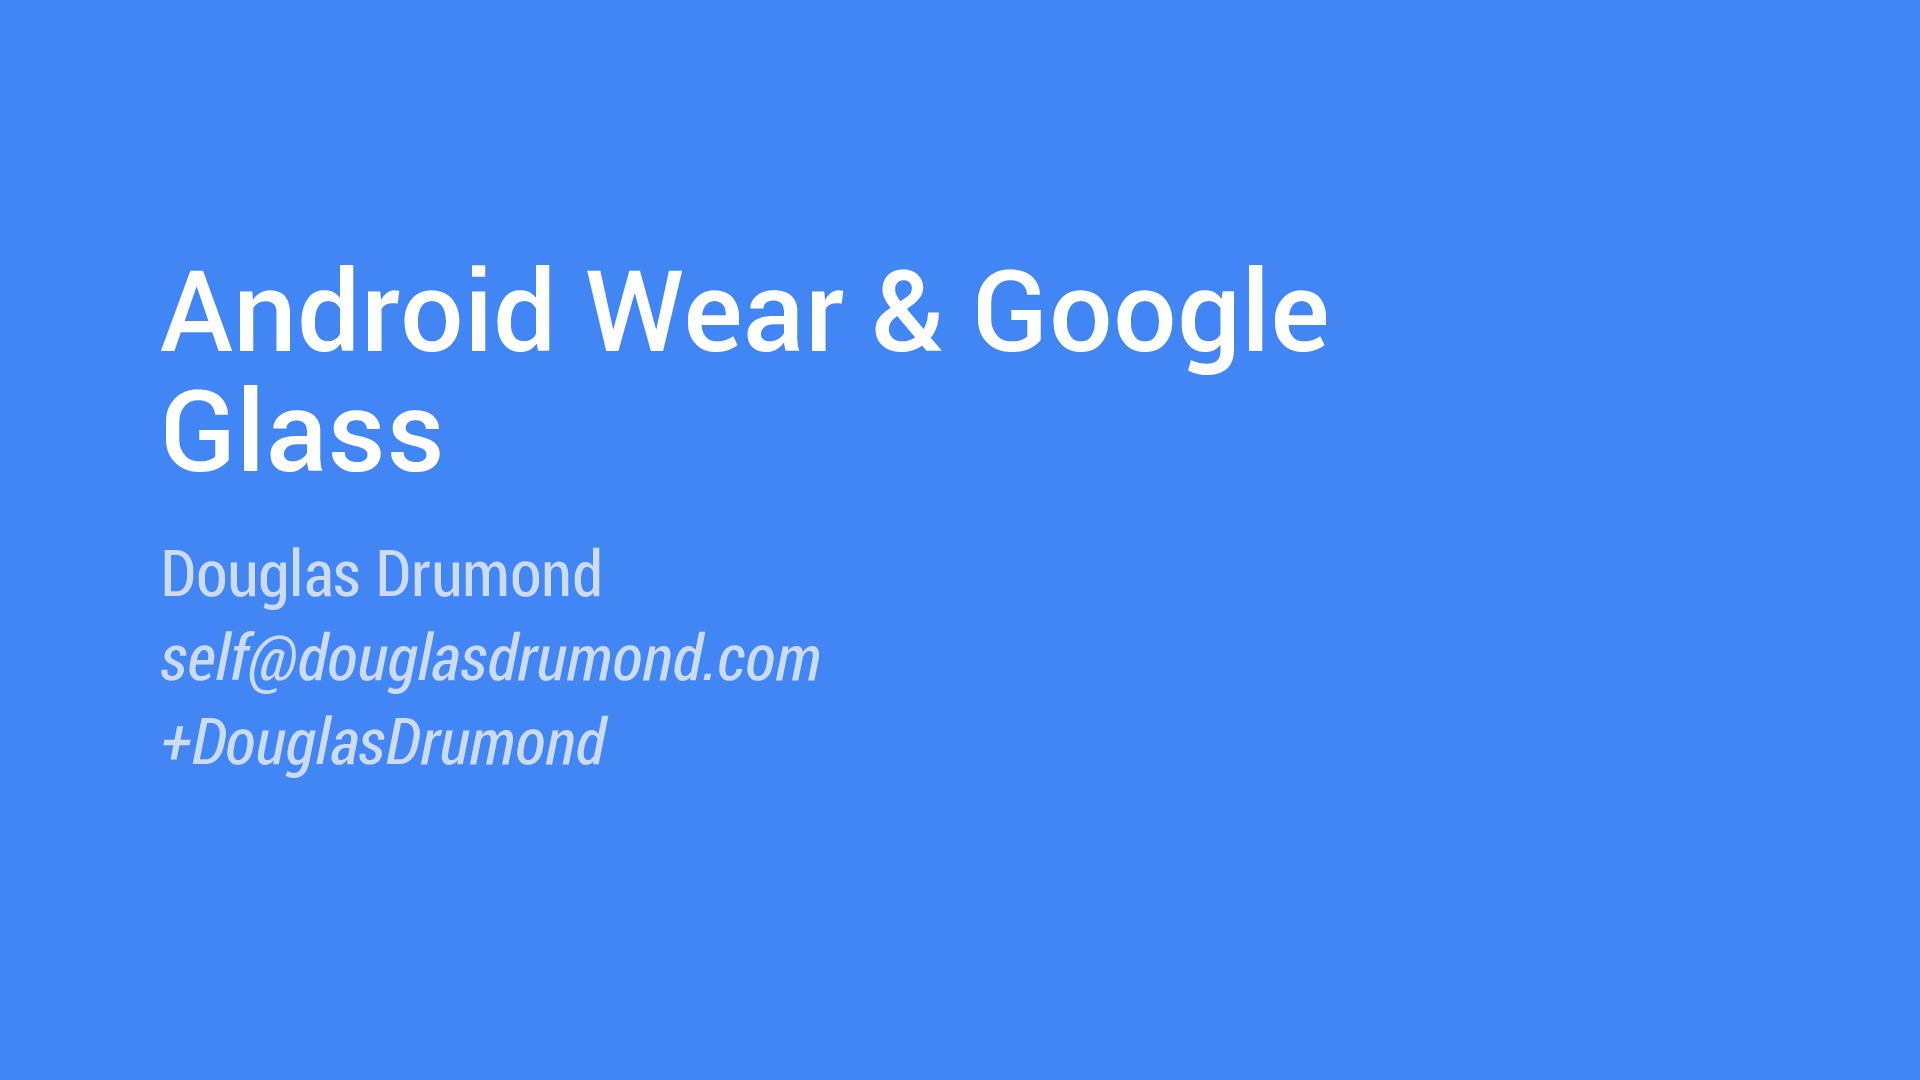 [MobCamp 2014] Android Wear and Google Glass